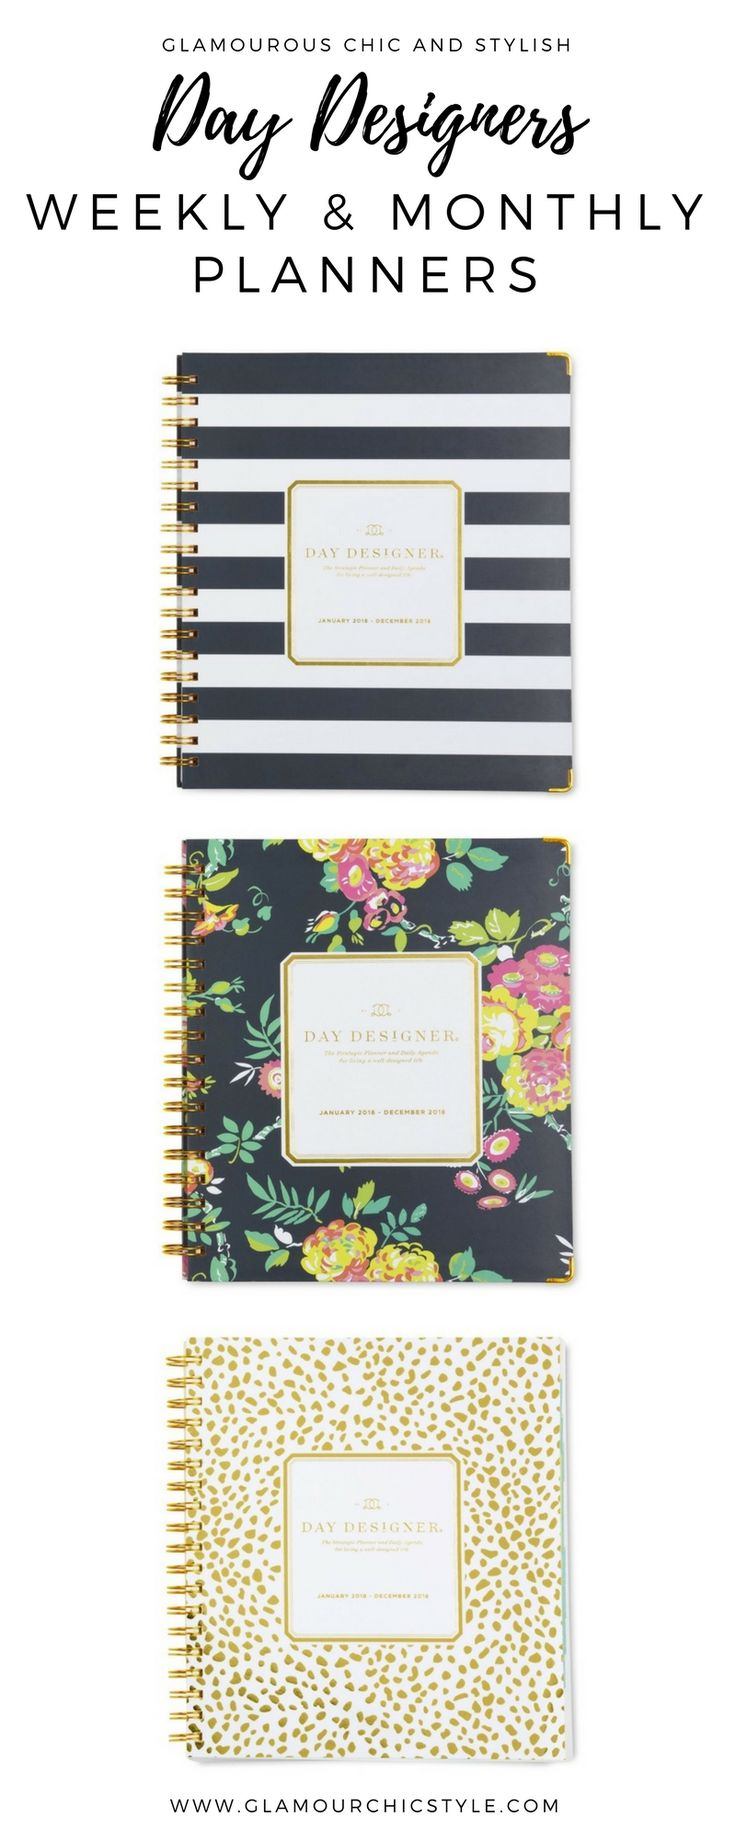 Day Designers - Weekly and Monthly Planners for keeping your diary managed and for your goals to be kept on track. #Ad